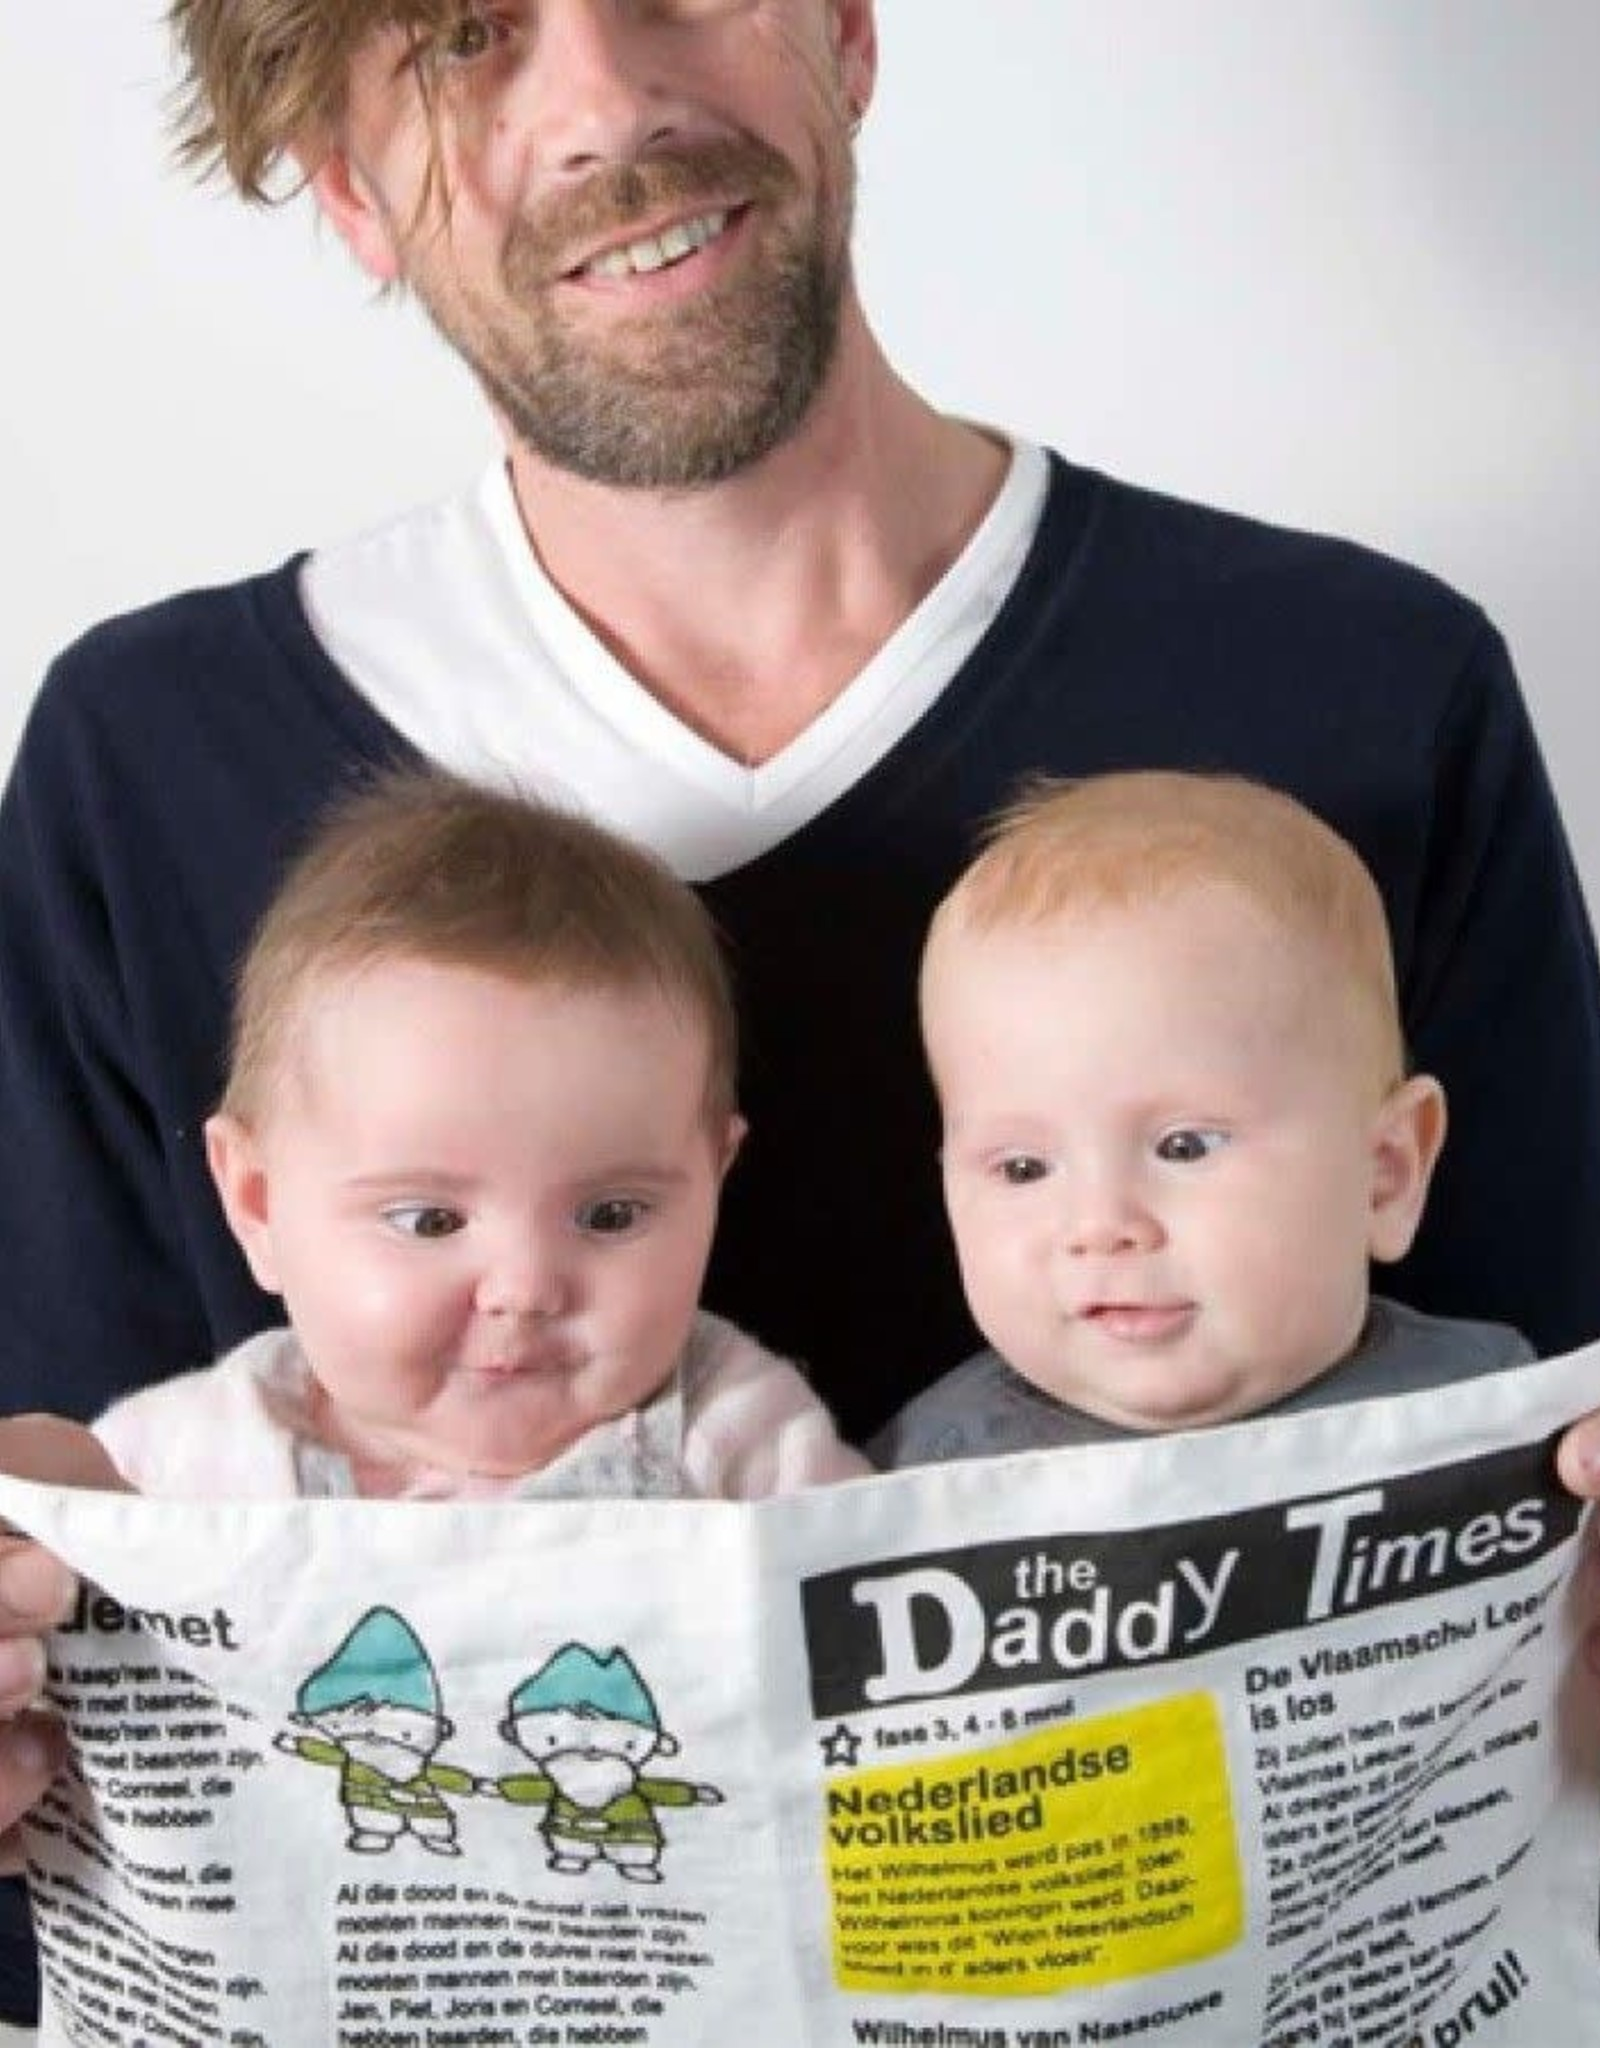 The Daddy Times